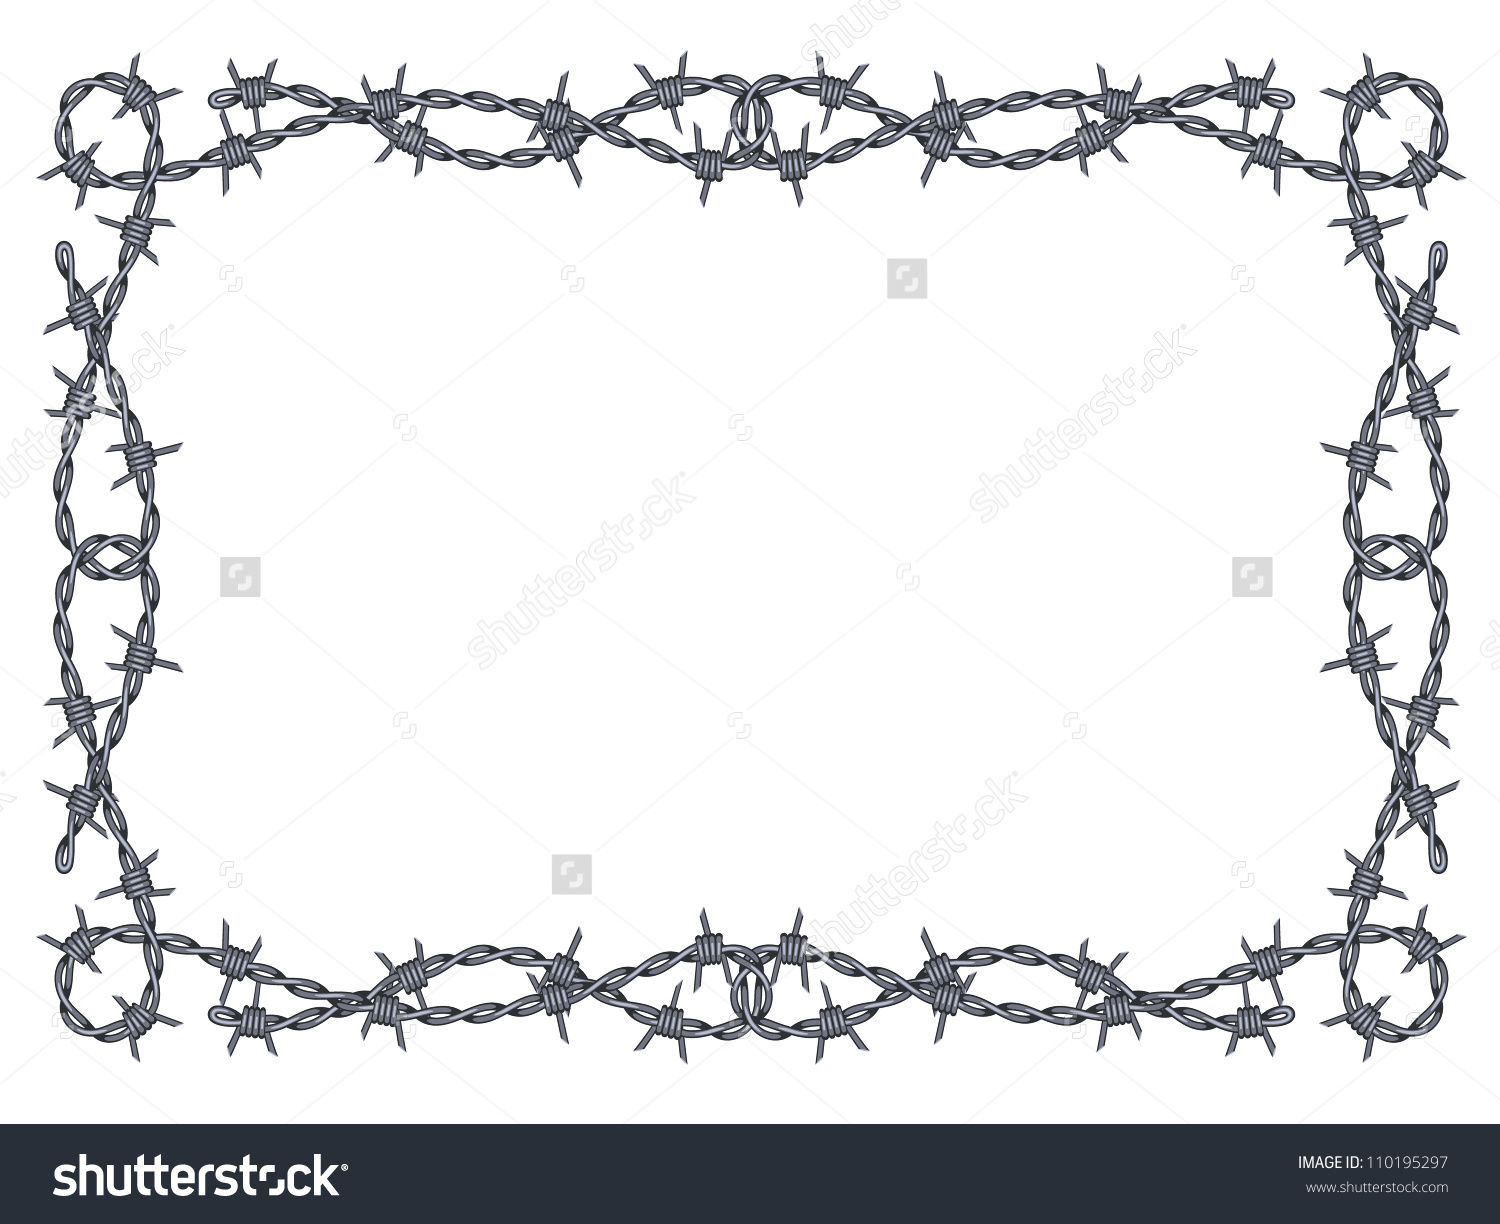 Wire-frame clipart - Clipground